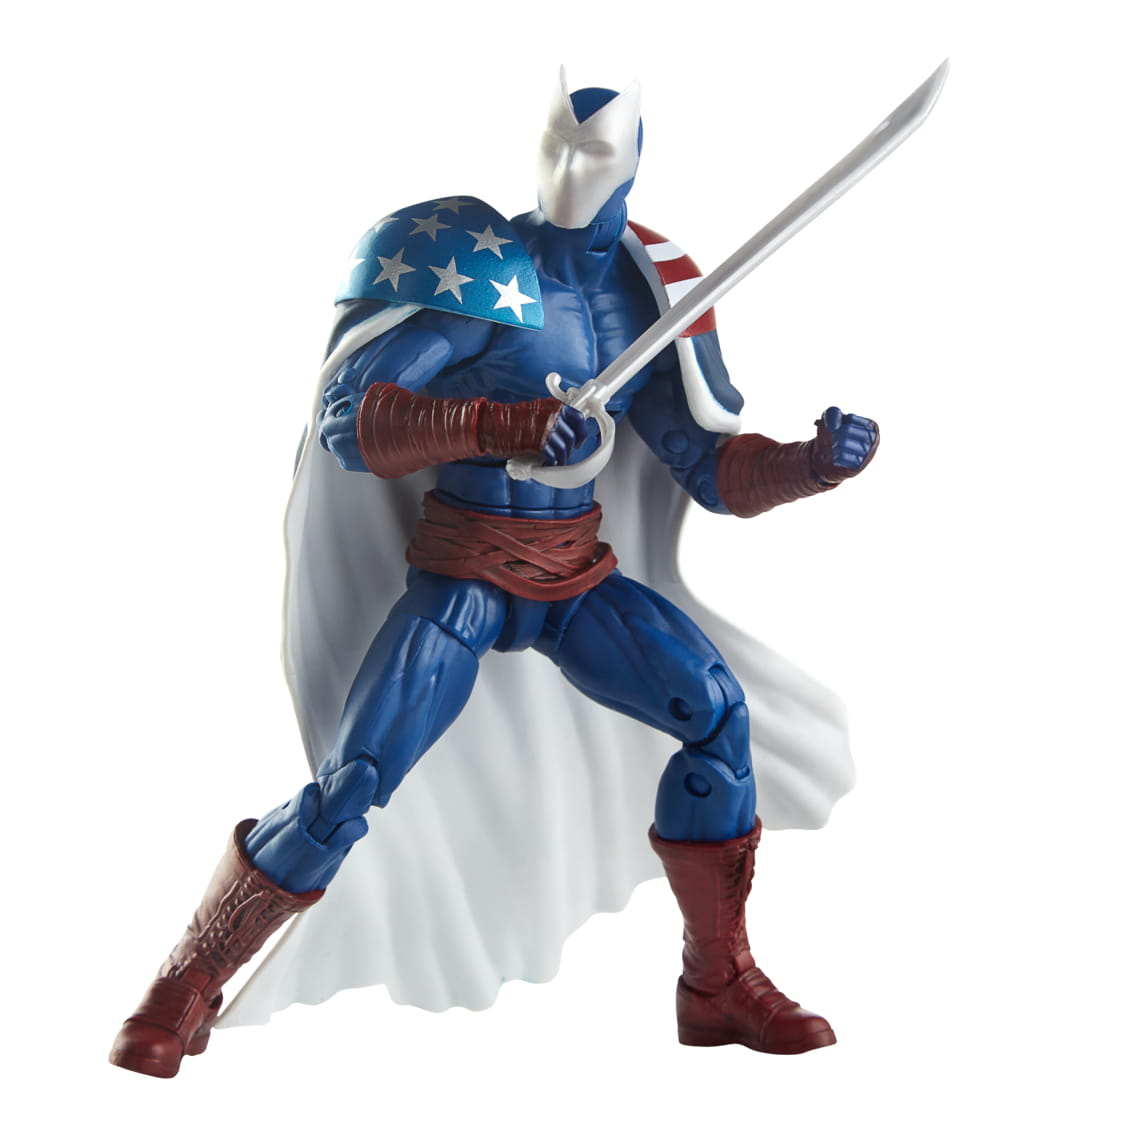 Avengers Citizen V Marvel Legends Figure by Hasbro